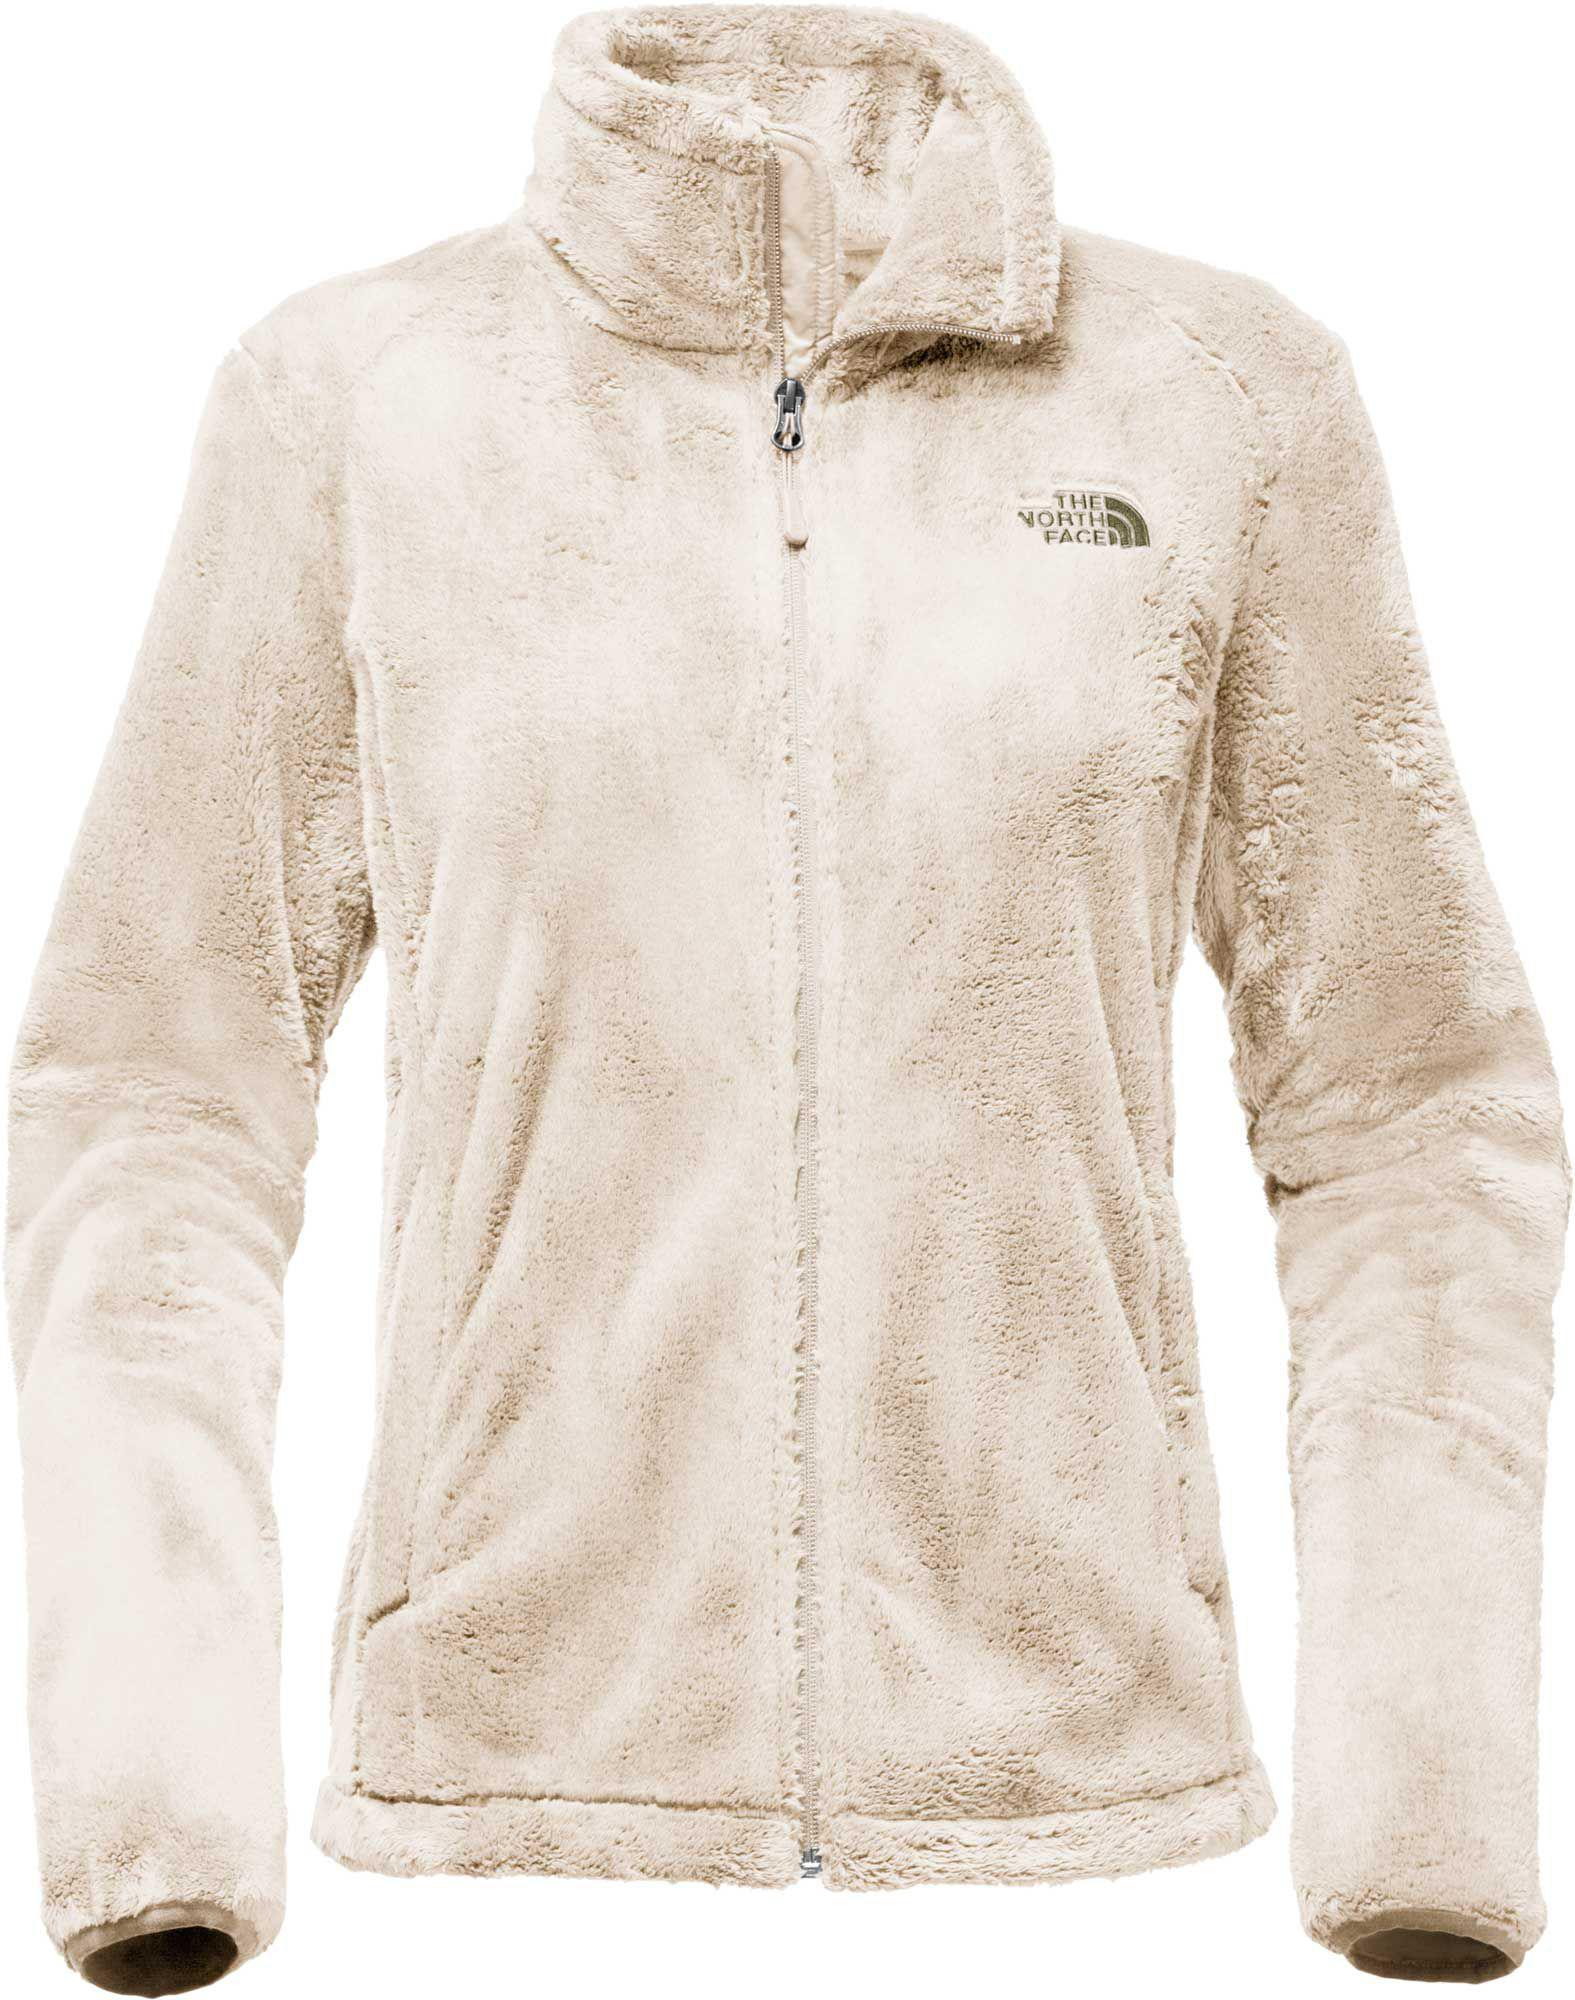 8110d8402 The North Face Natural Osito 2 Fleece Jacket